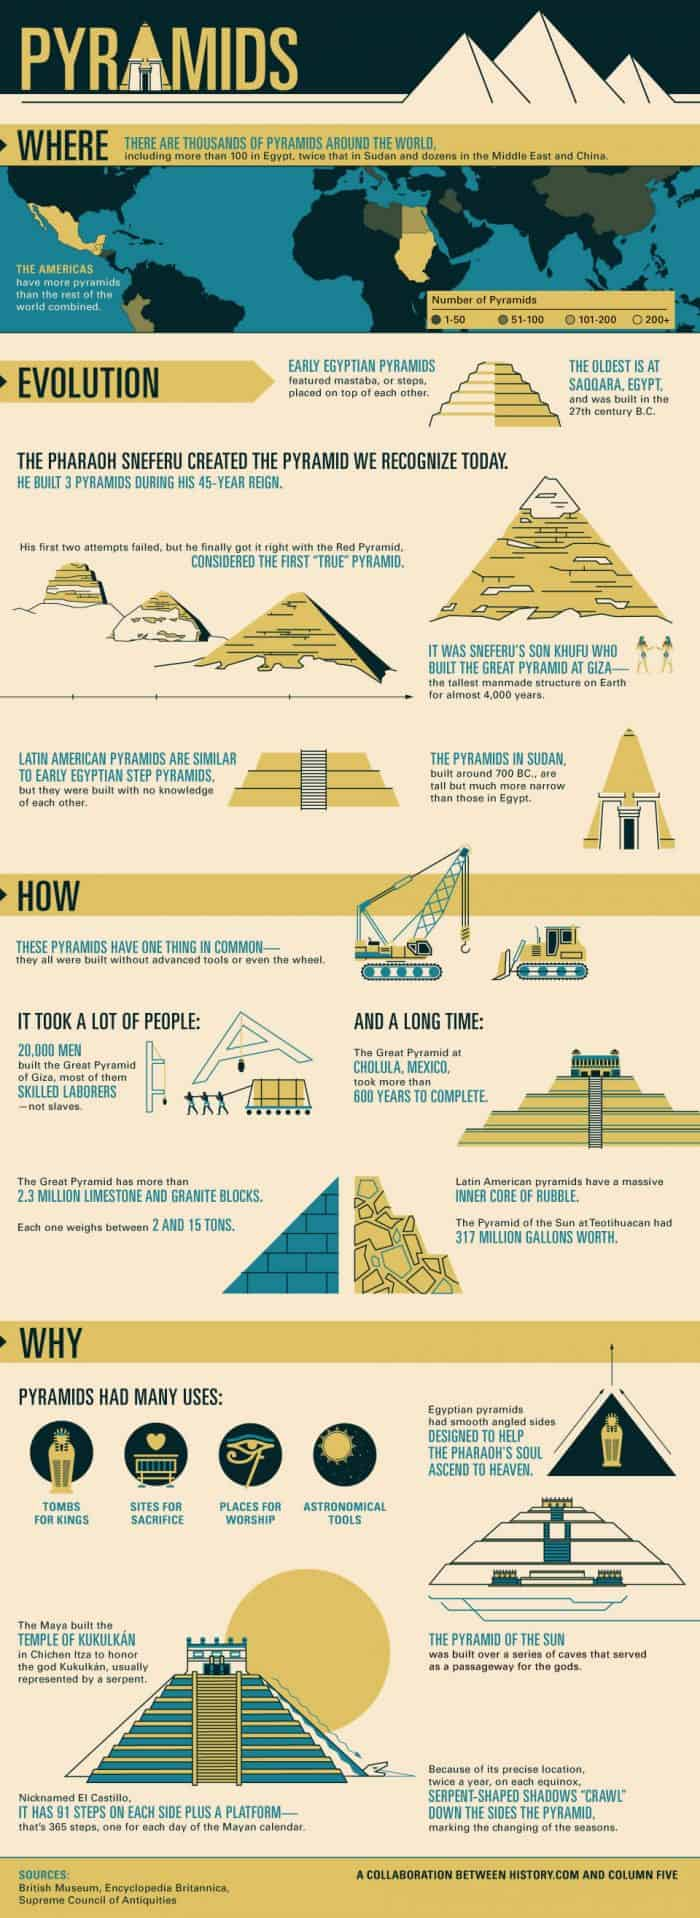 Facts that you may or may not know about pyramids